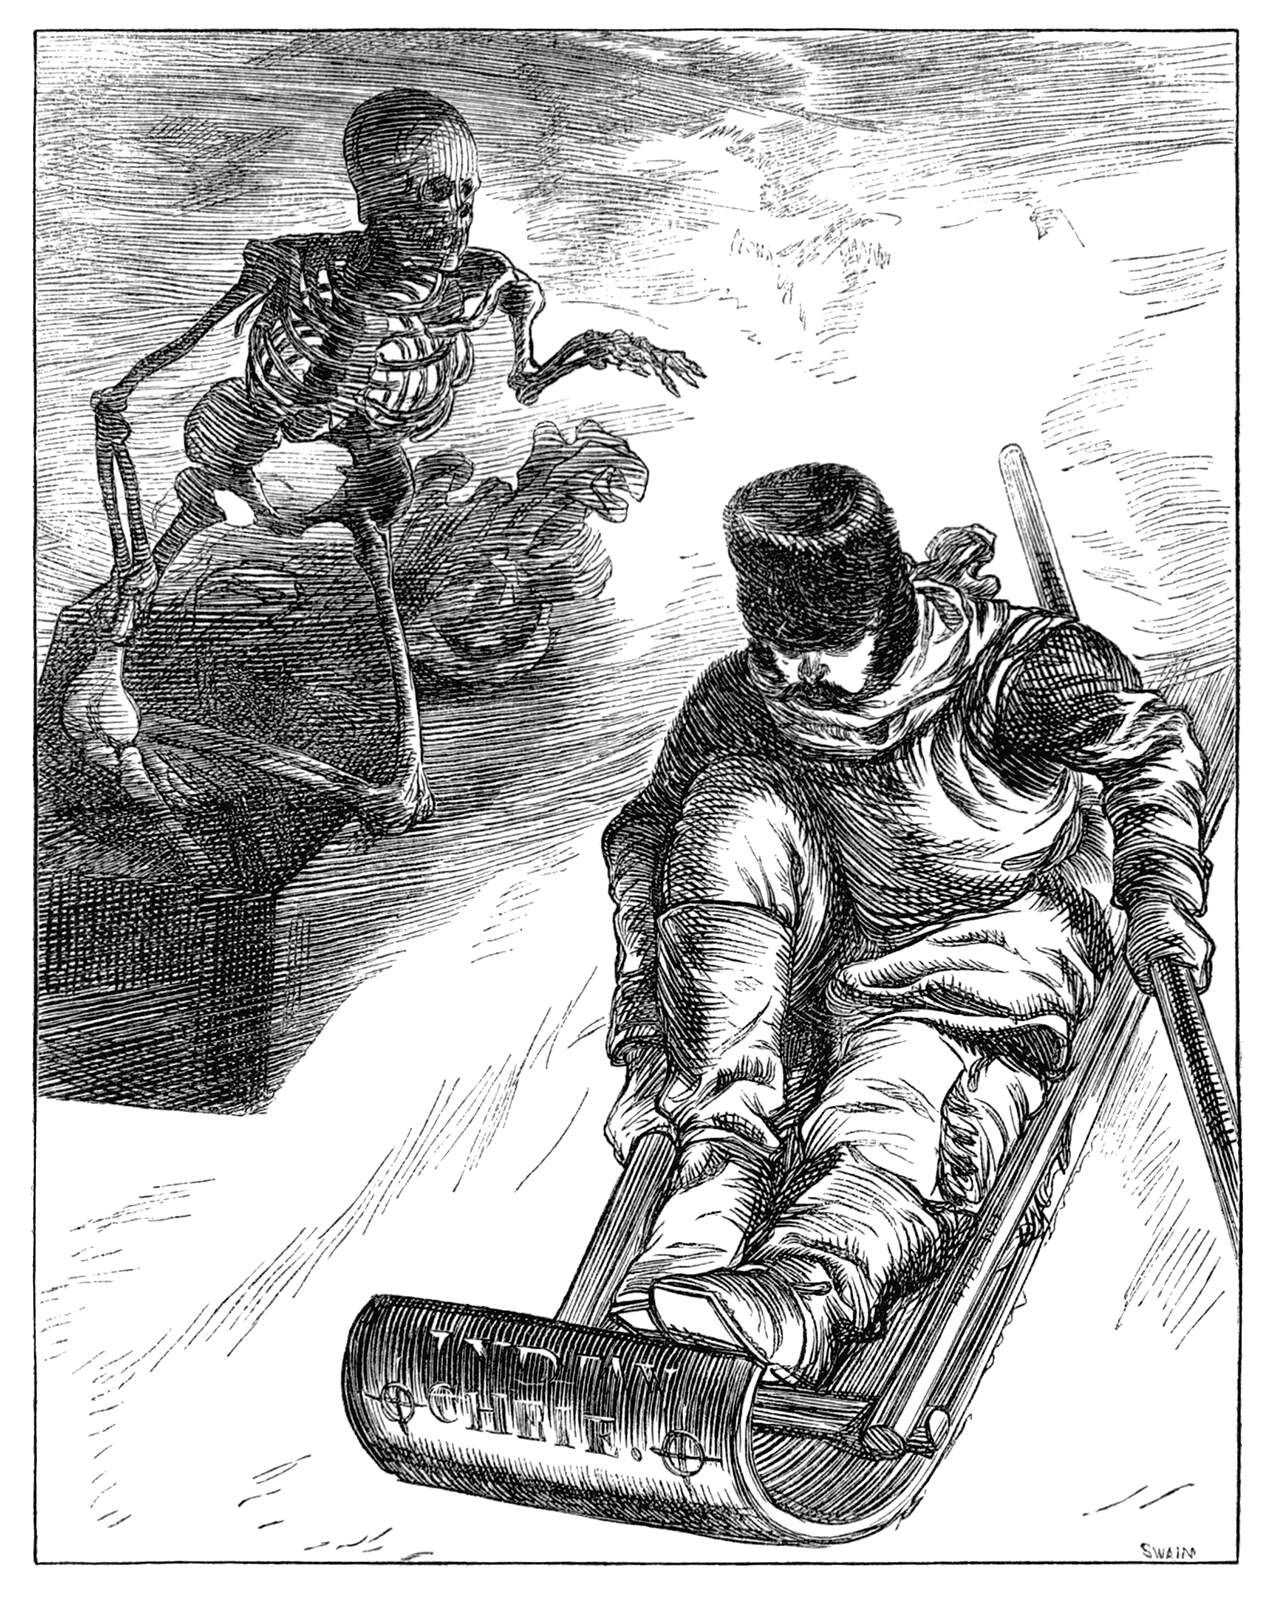 A skeleton pursues a man on a bobsled